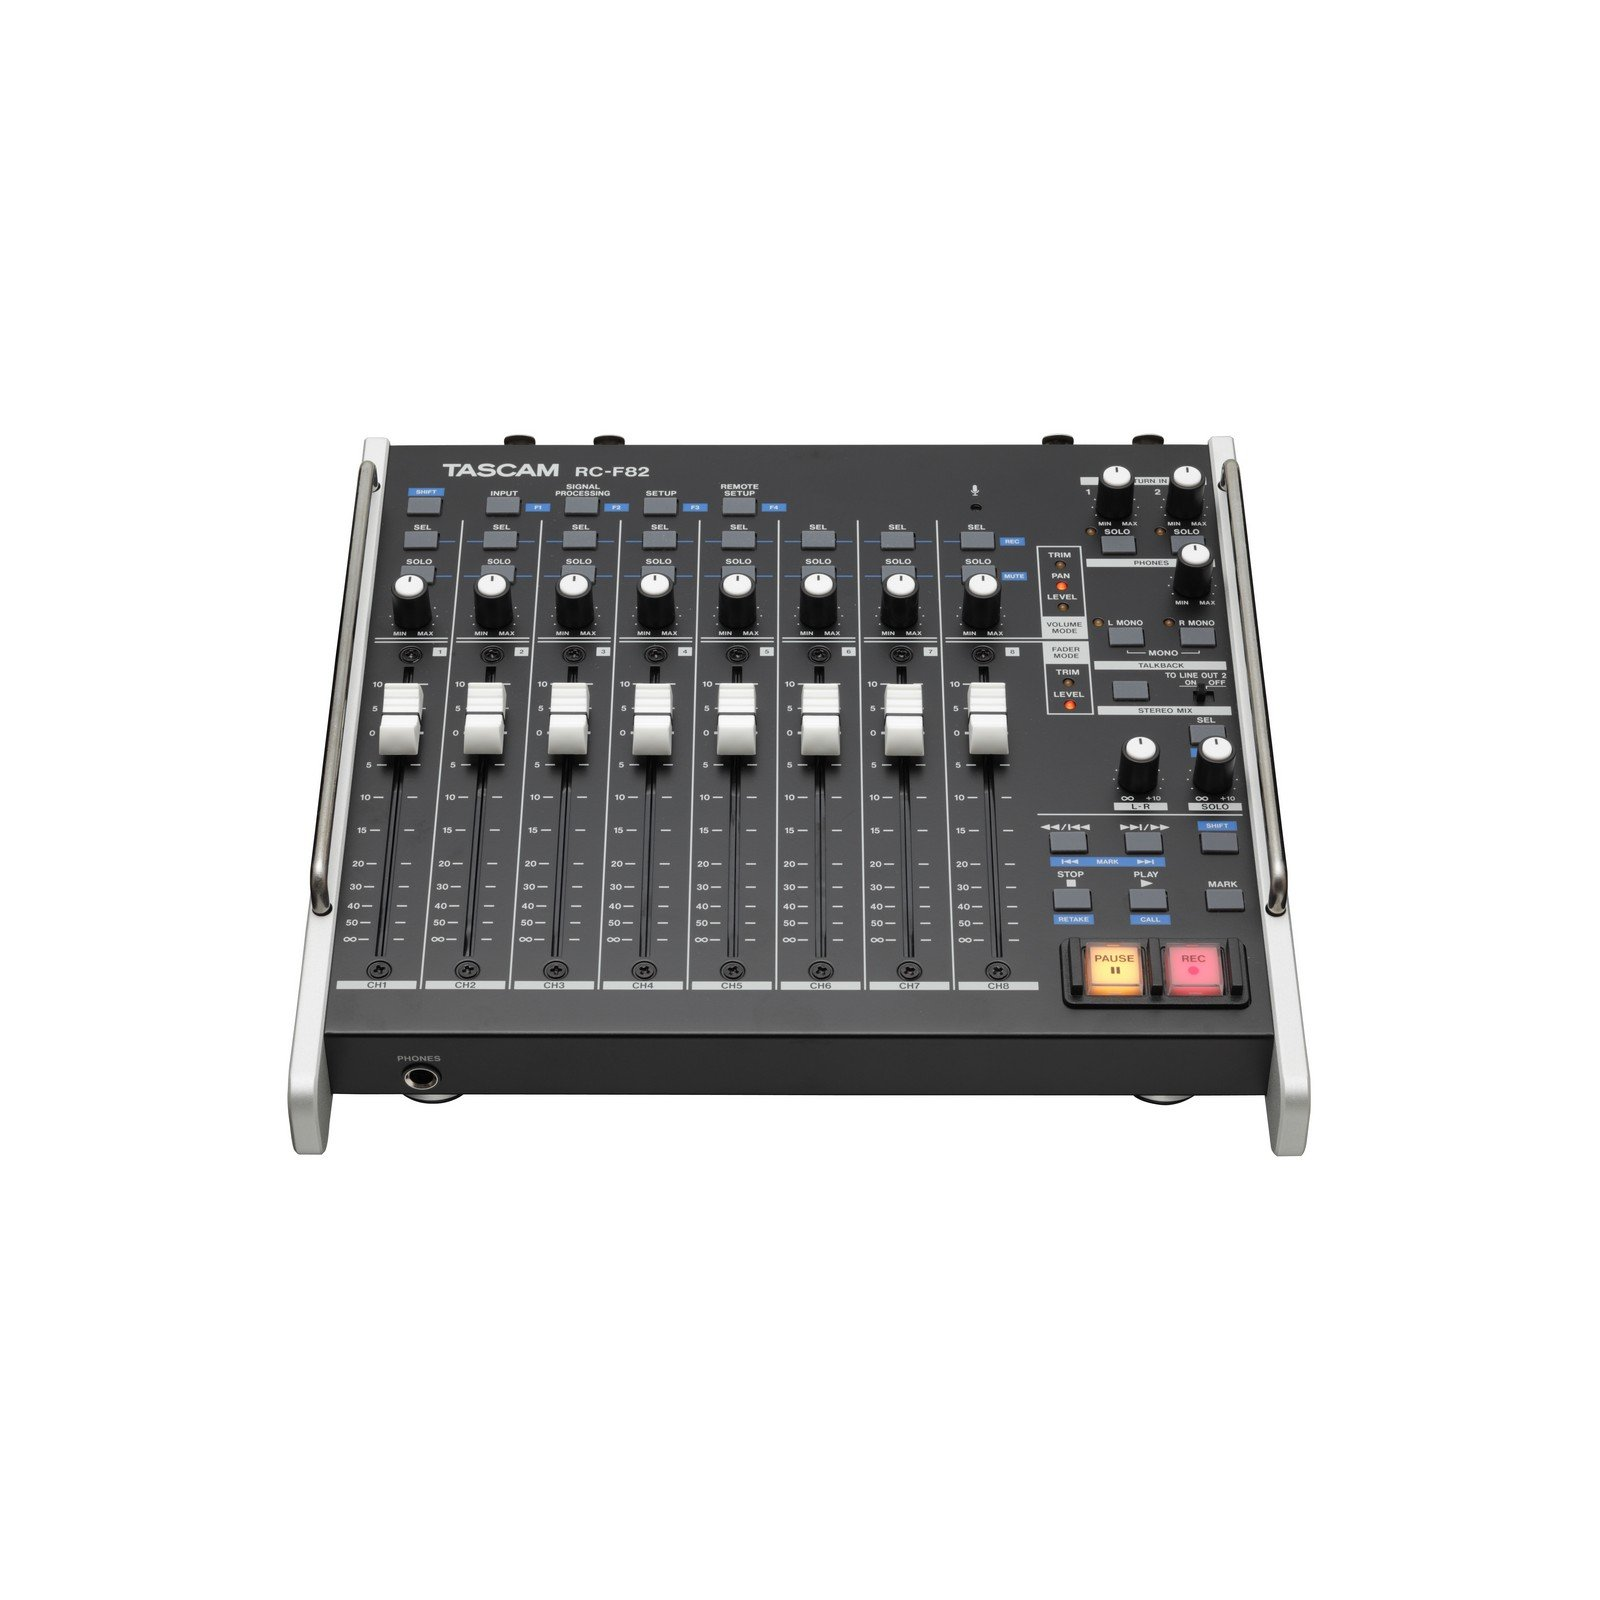 Tascam Communication/Control Surface for HS-P82